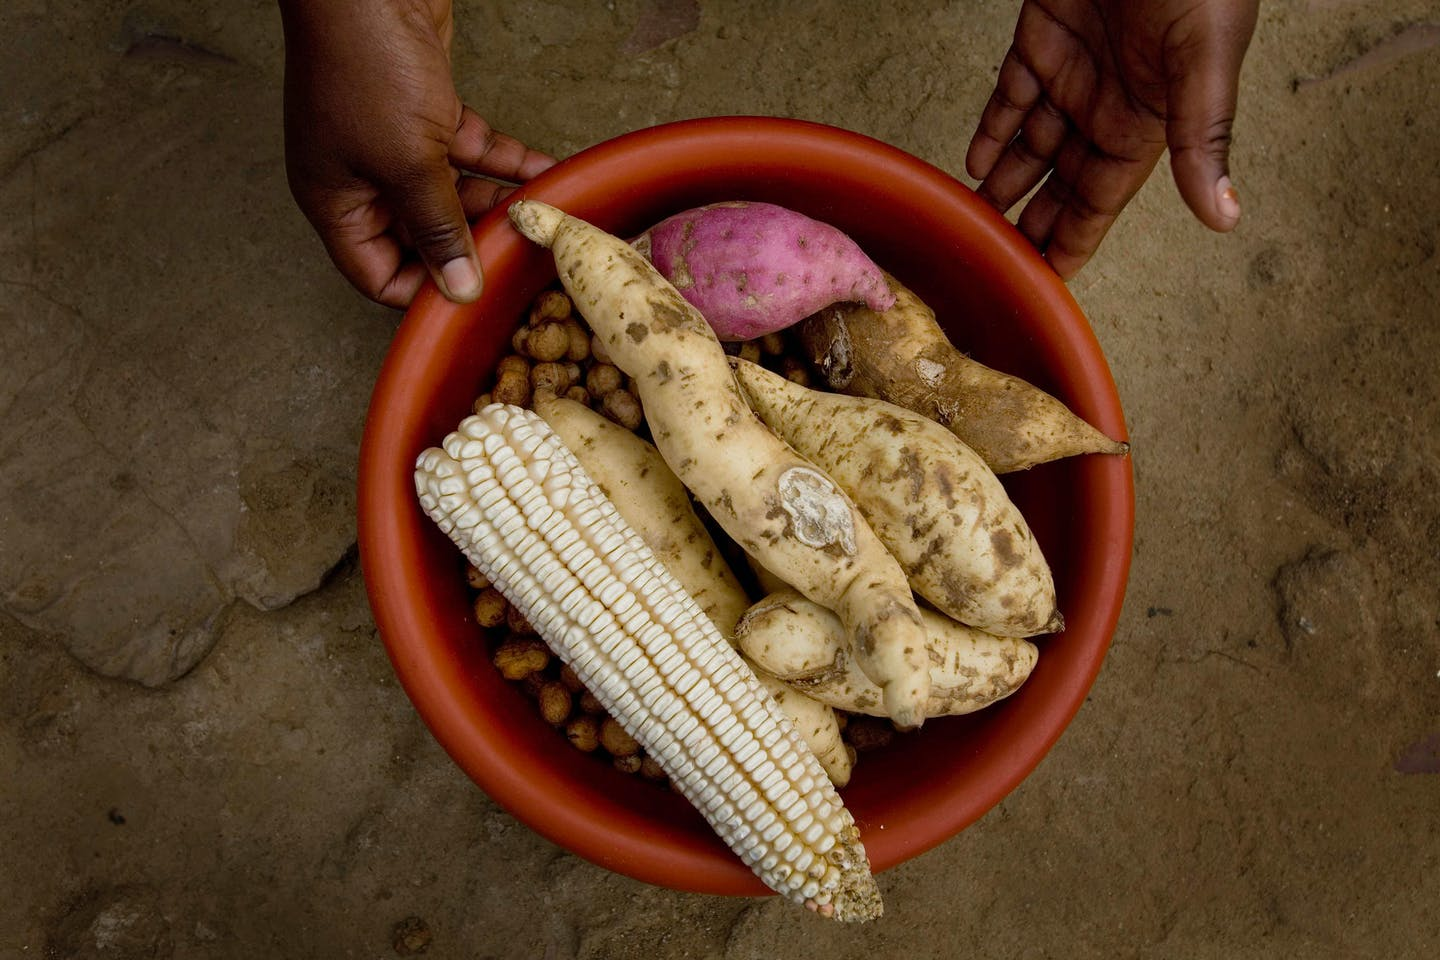 food security in Harare